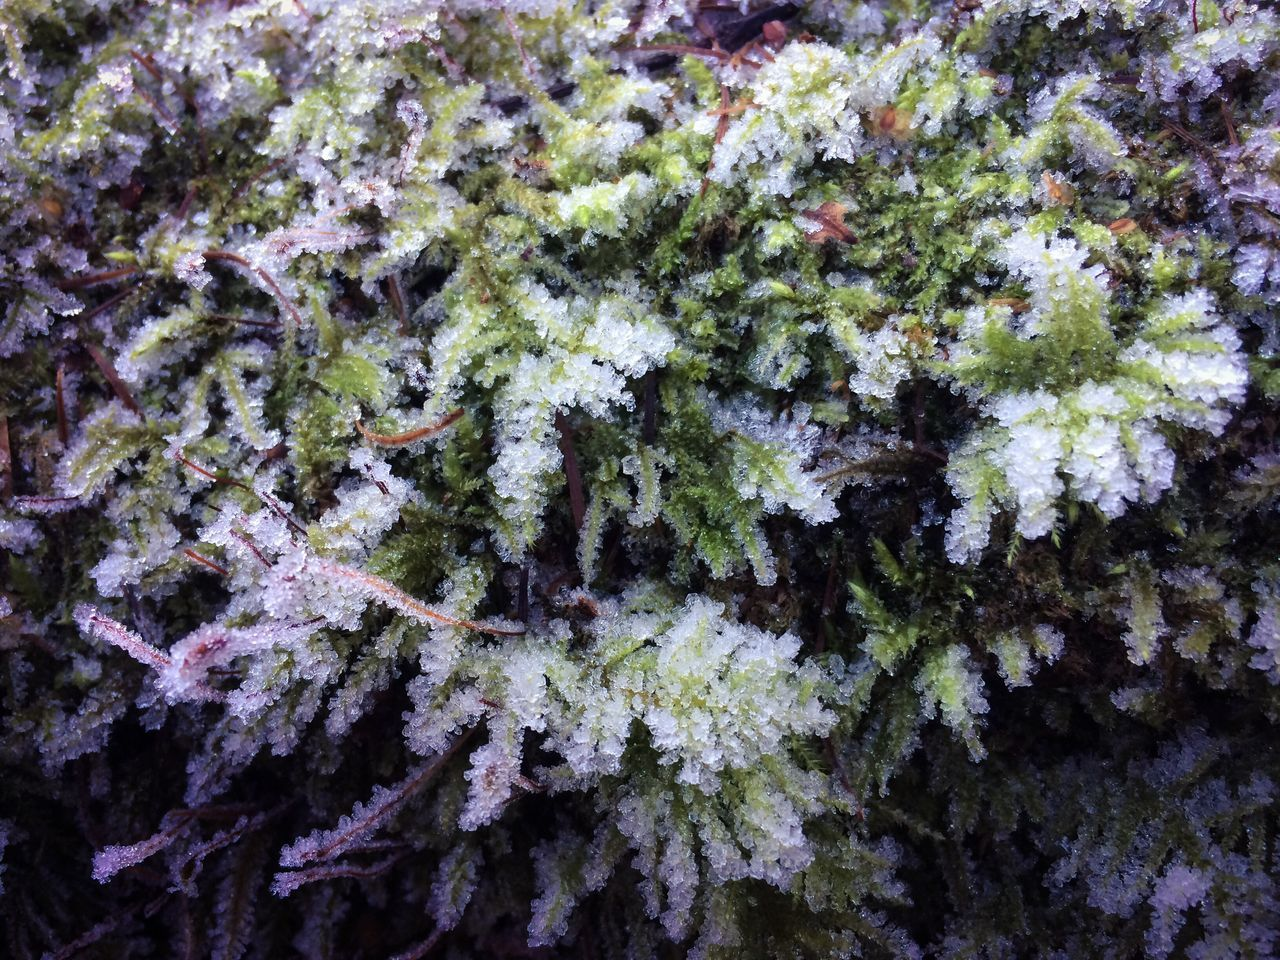 growth, nature, lichen, plant, full frame, no people, close-up, tree, outdoors, fragility, beauty in nature, day, freshness